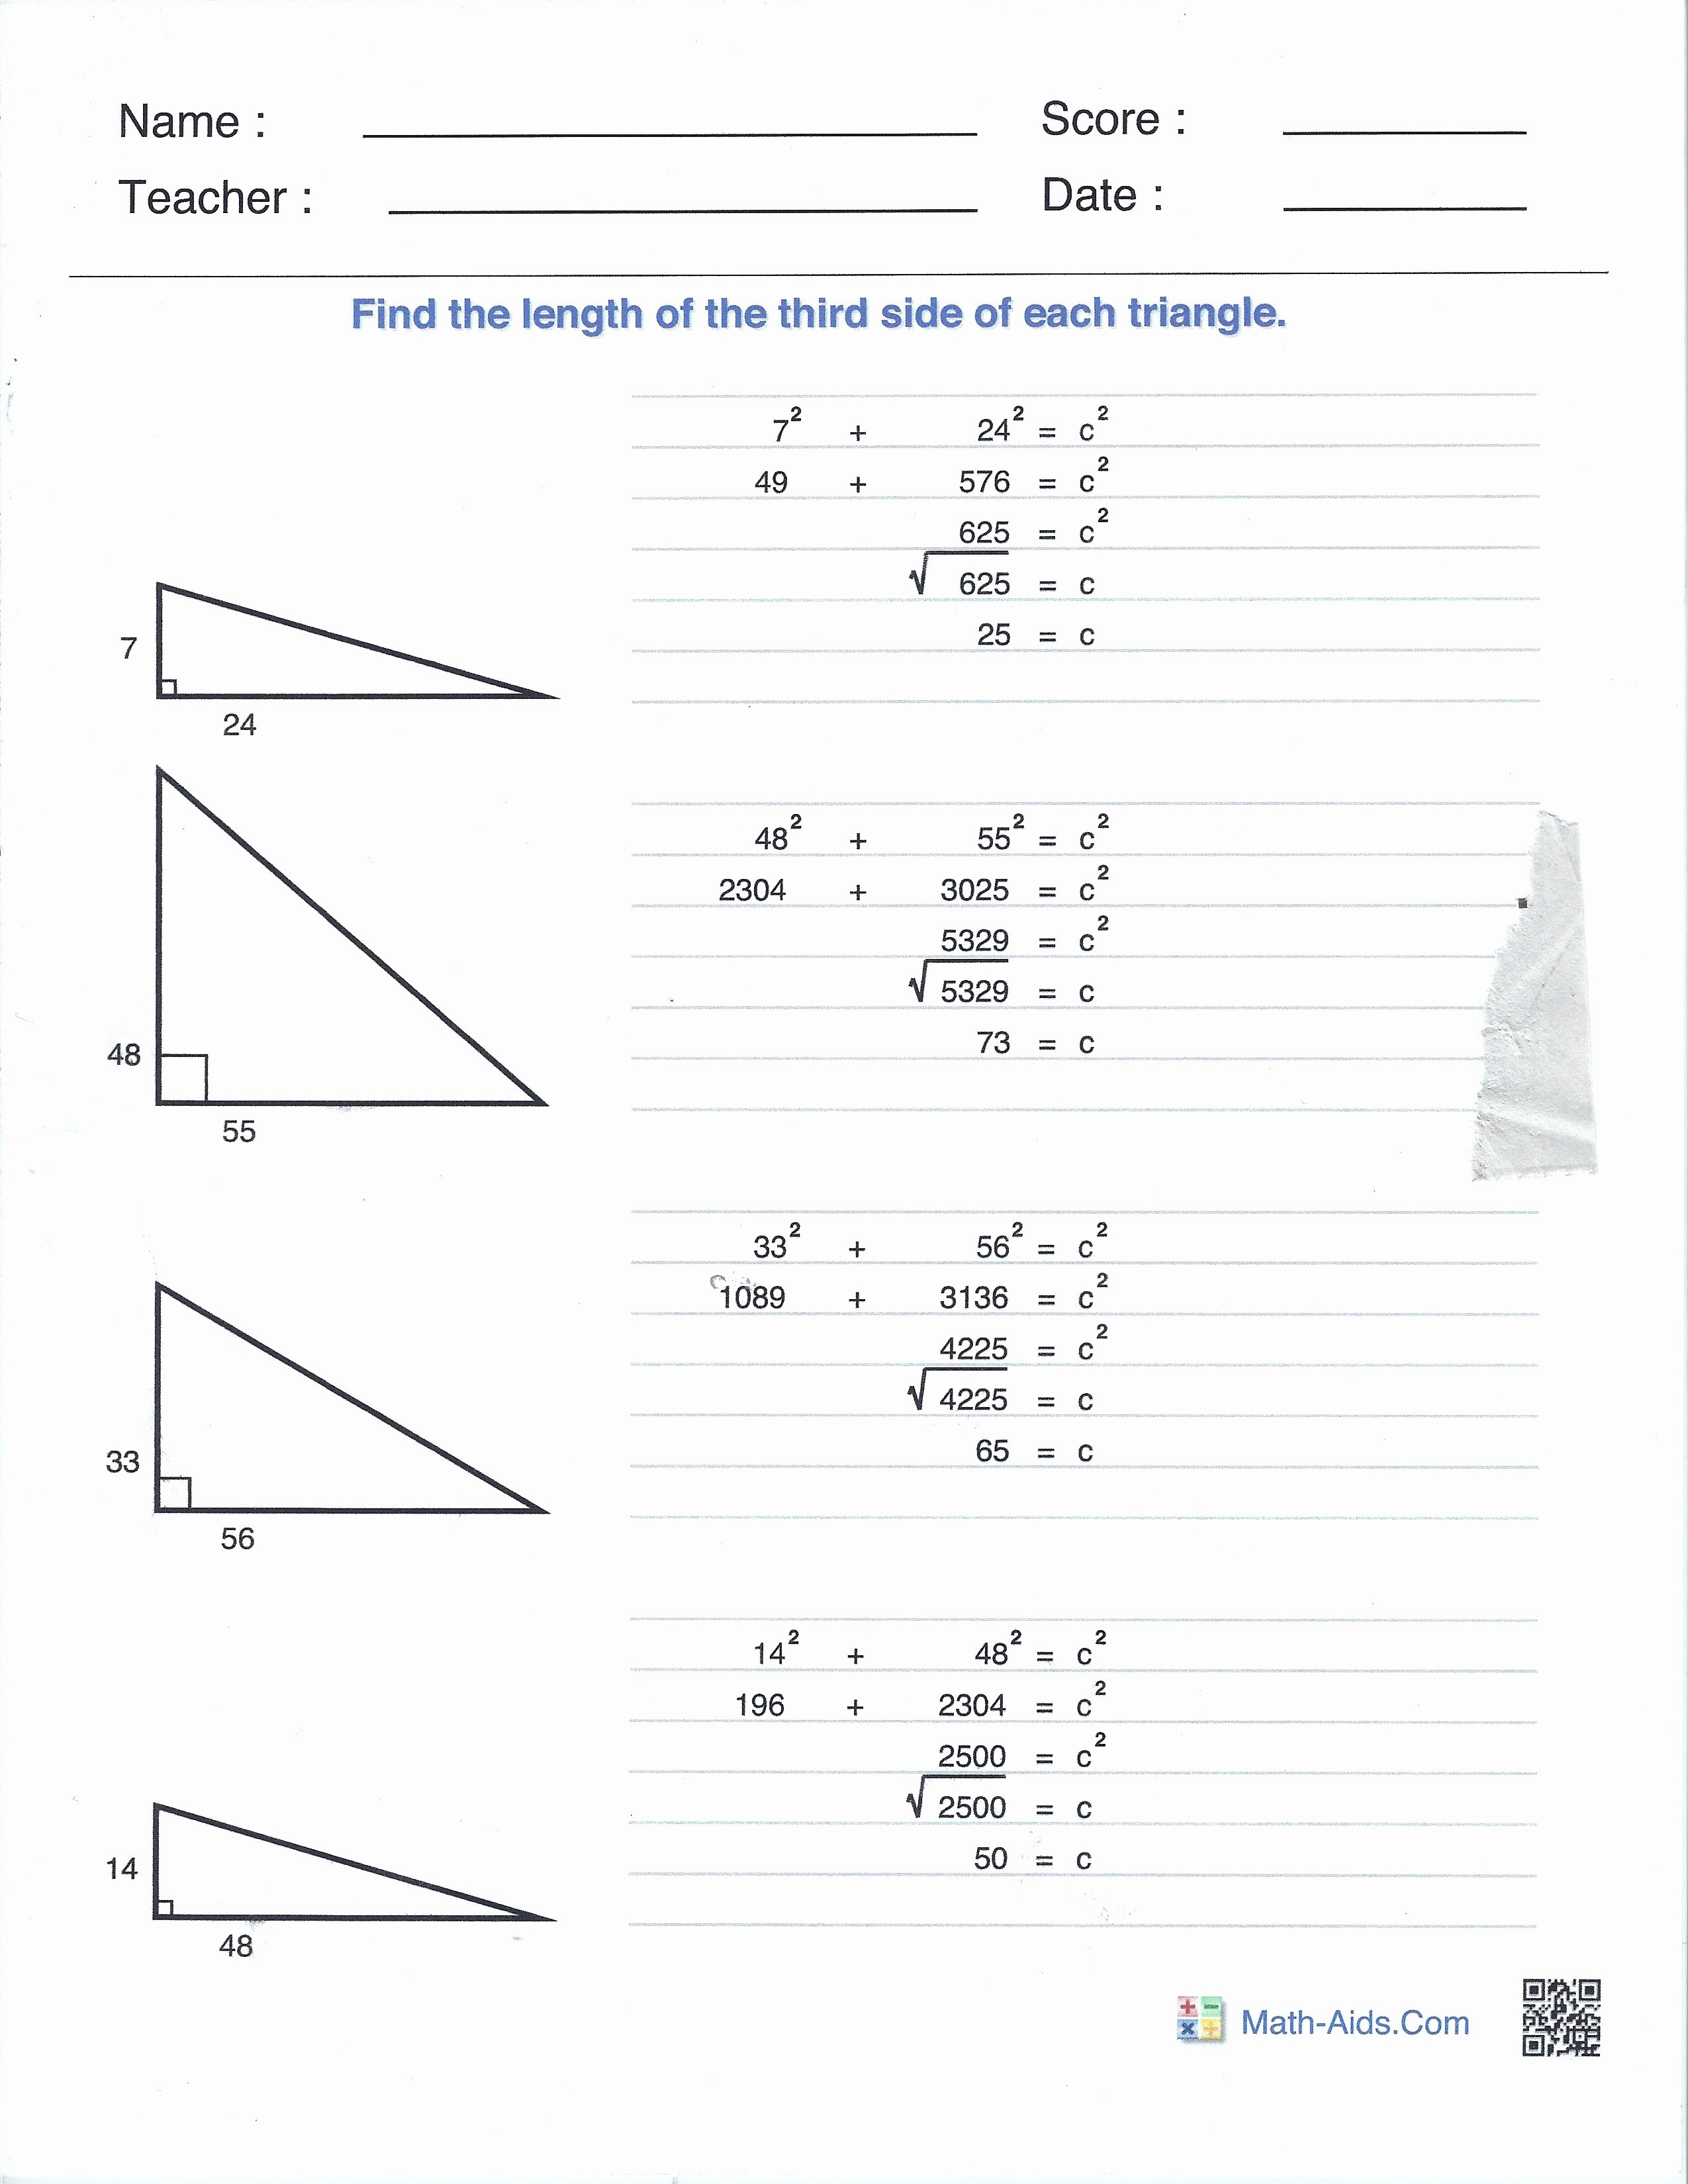 Pythagoras theorem Worksheet with Answers Lovely Right Angles and the Pythagorean theorem